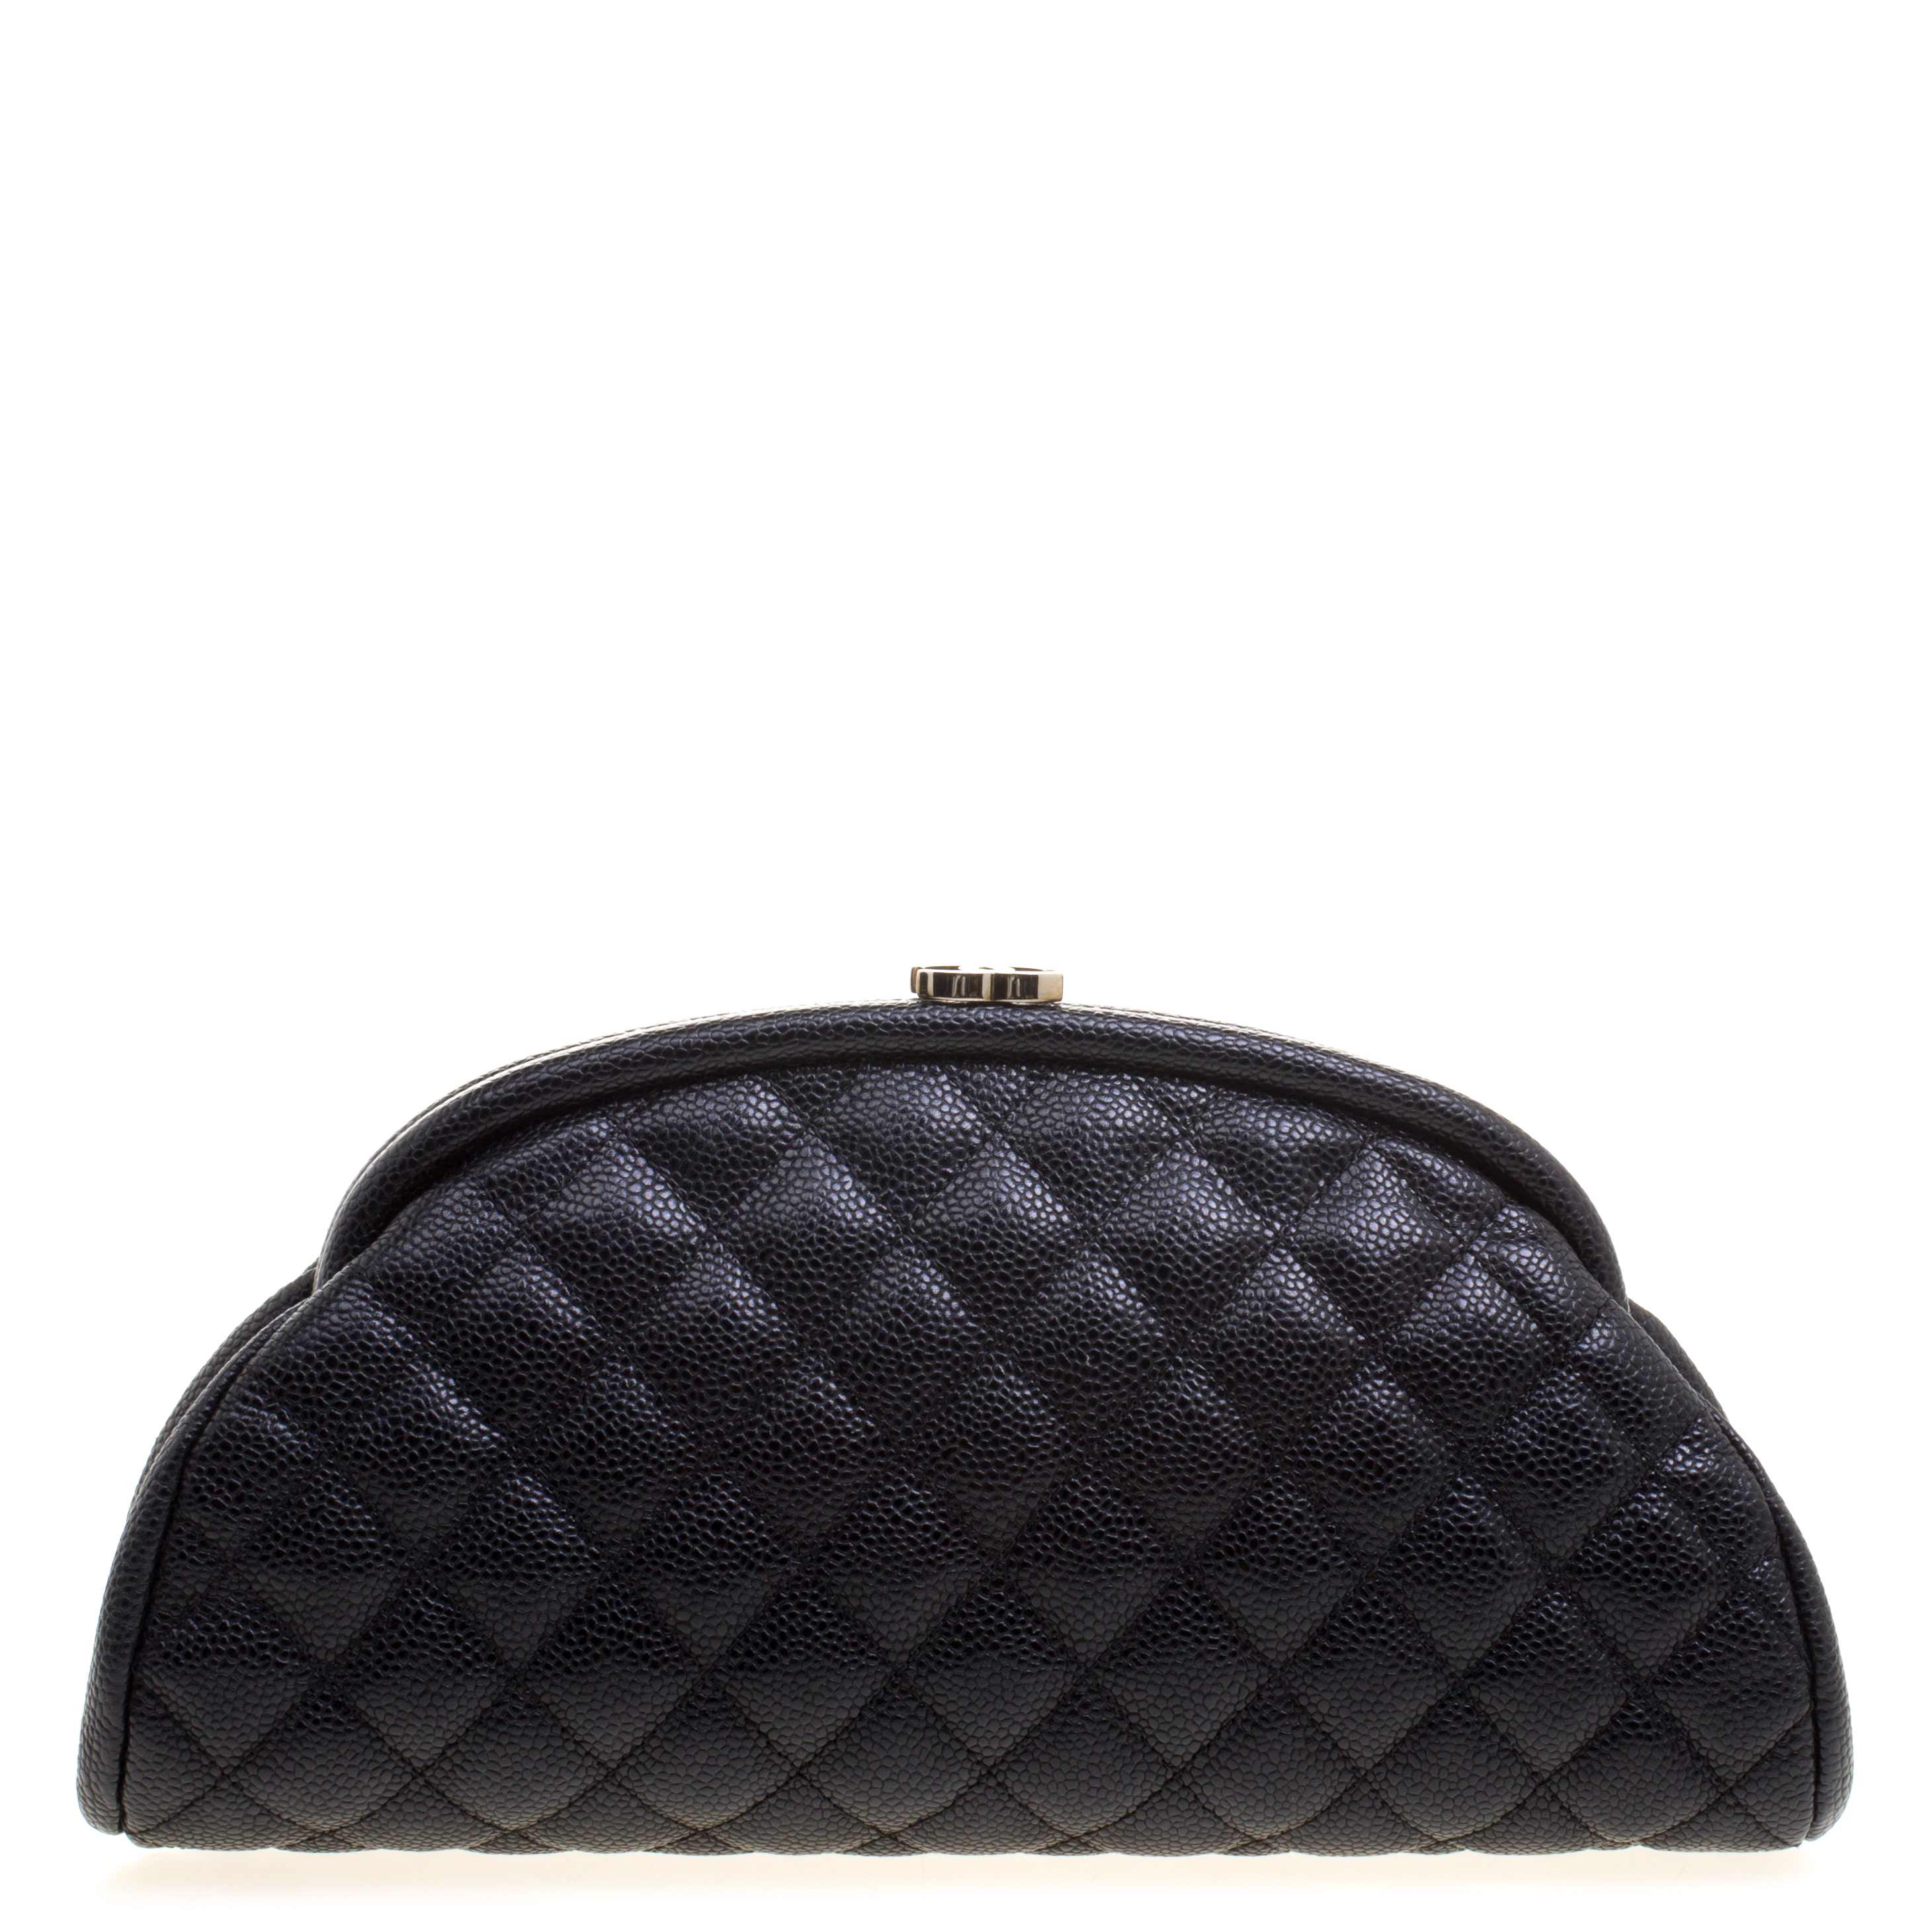 4448133828c452 ... Chanel Black Quilted Caviar Leather Timeless Classic Clutch. nextprev.  prevnext